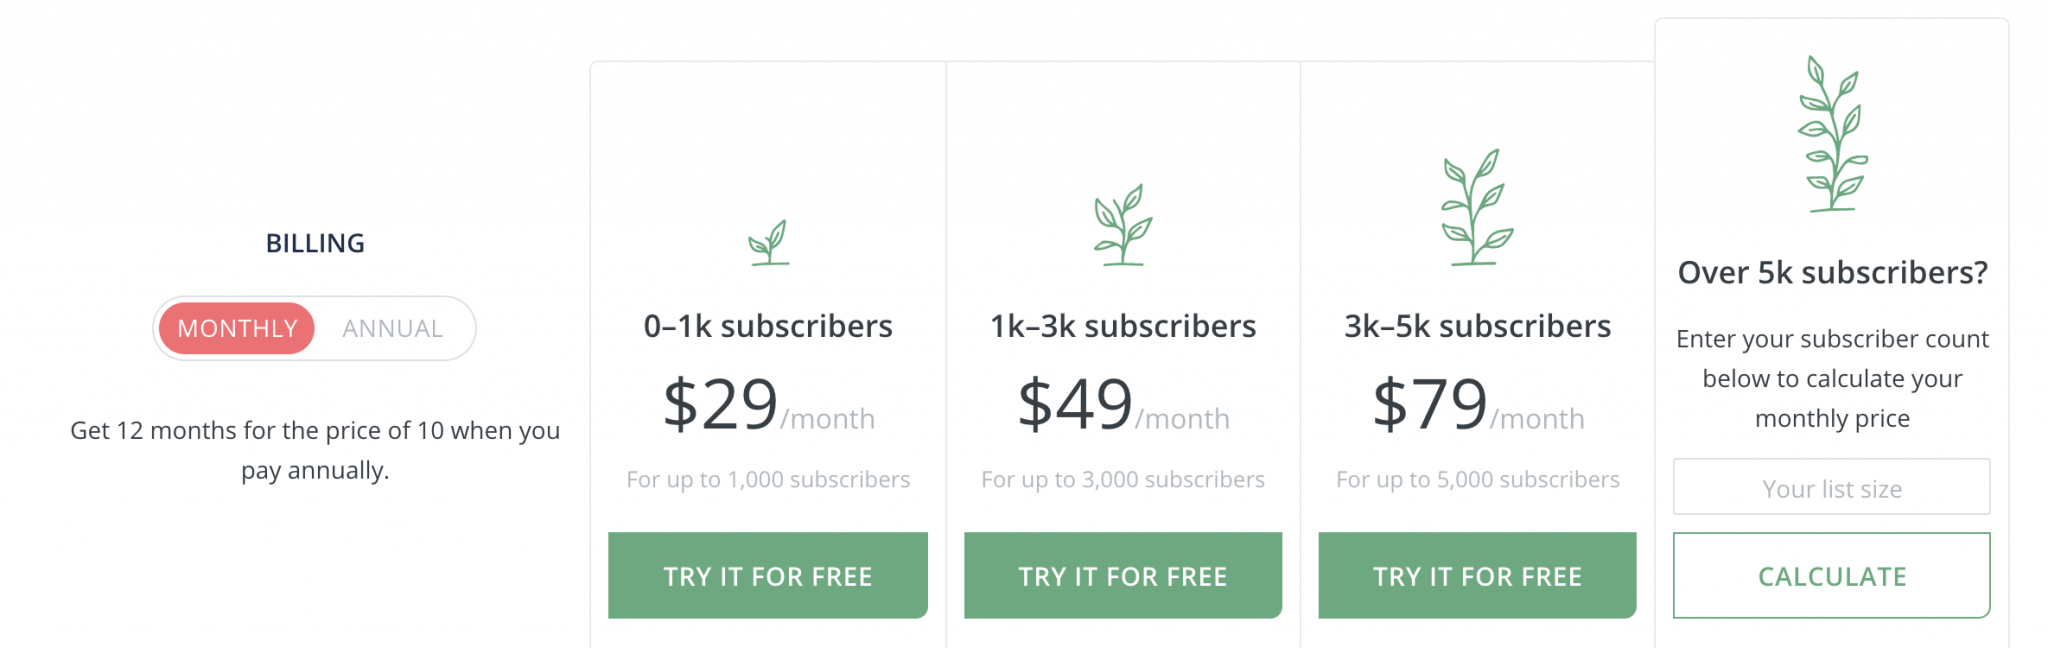 Voucher Codes 30 Off Convertkit 2020